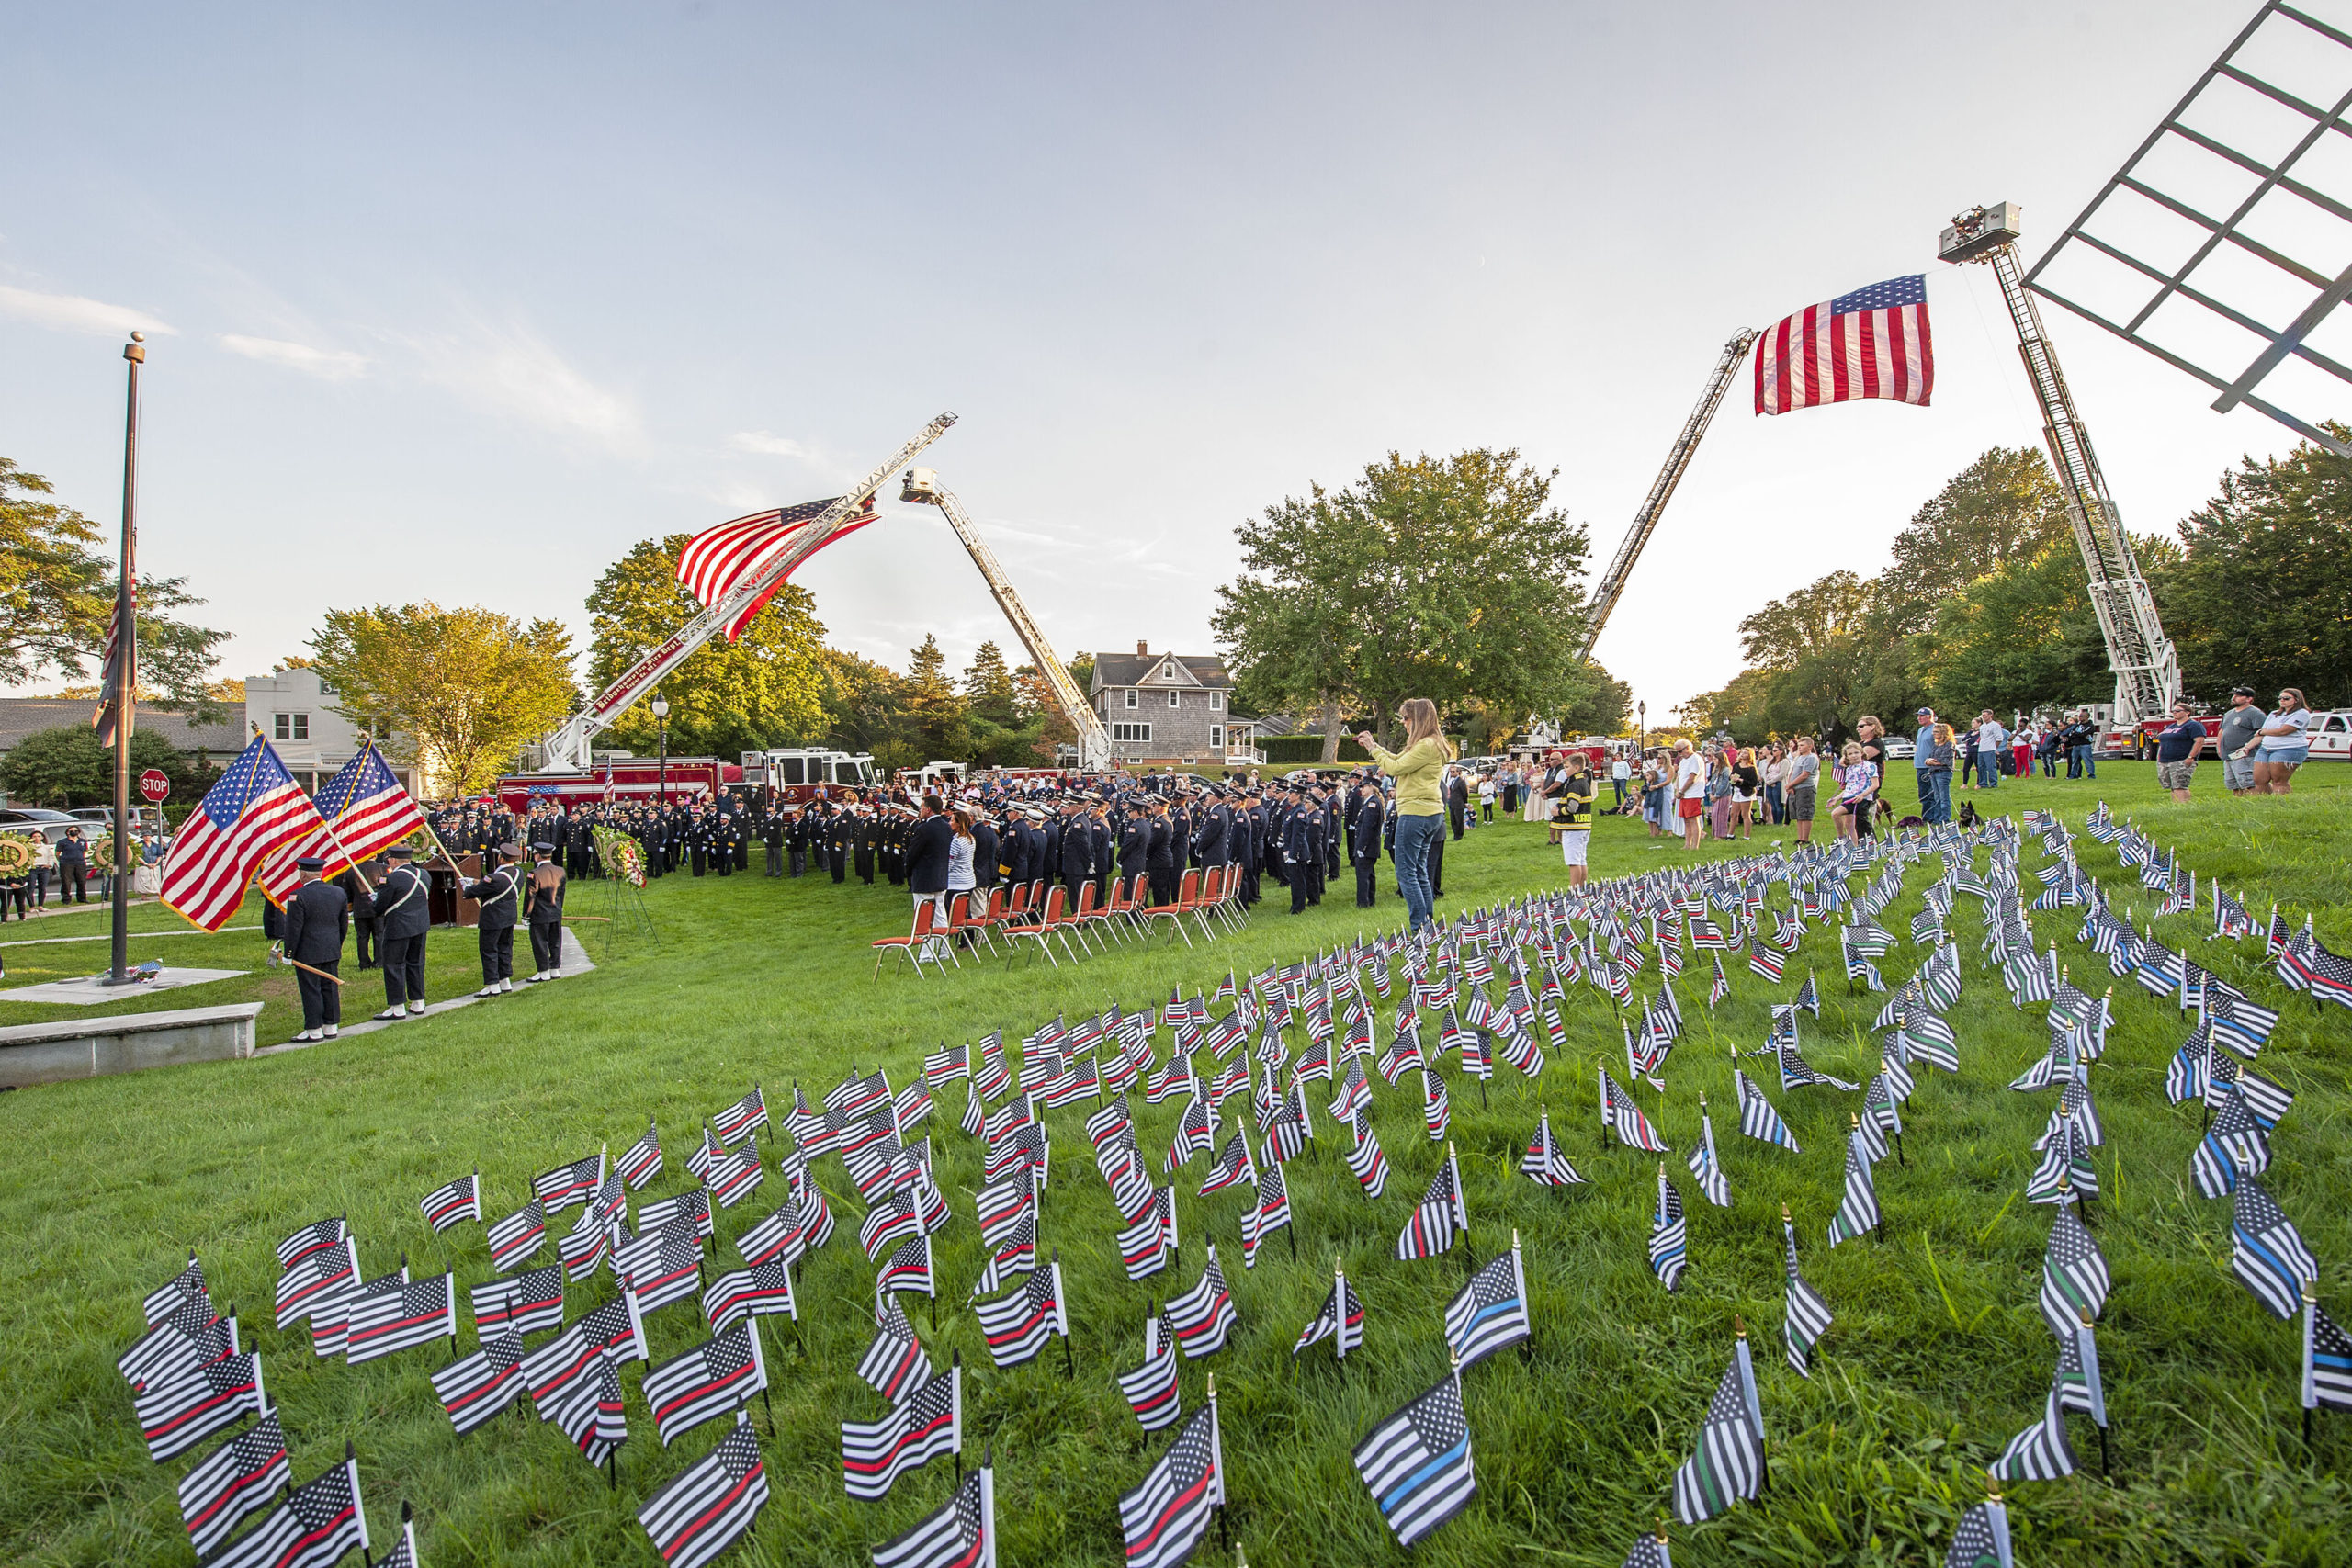 Individual flags for every member of the fire, police or military who died at 9/11 were  laid out during a ceremony commemorating the 20th anniversary of the attack on the World Trade Center, held on the Village Green in East Hampton and attended by 11 different East End fire, police and EMS agencies on Saturday afternoon.